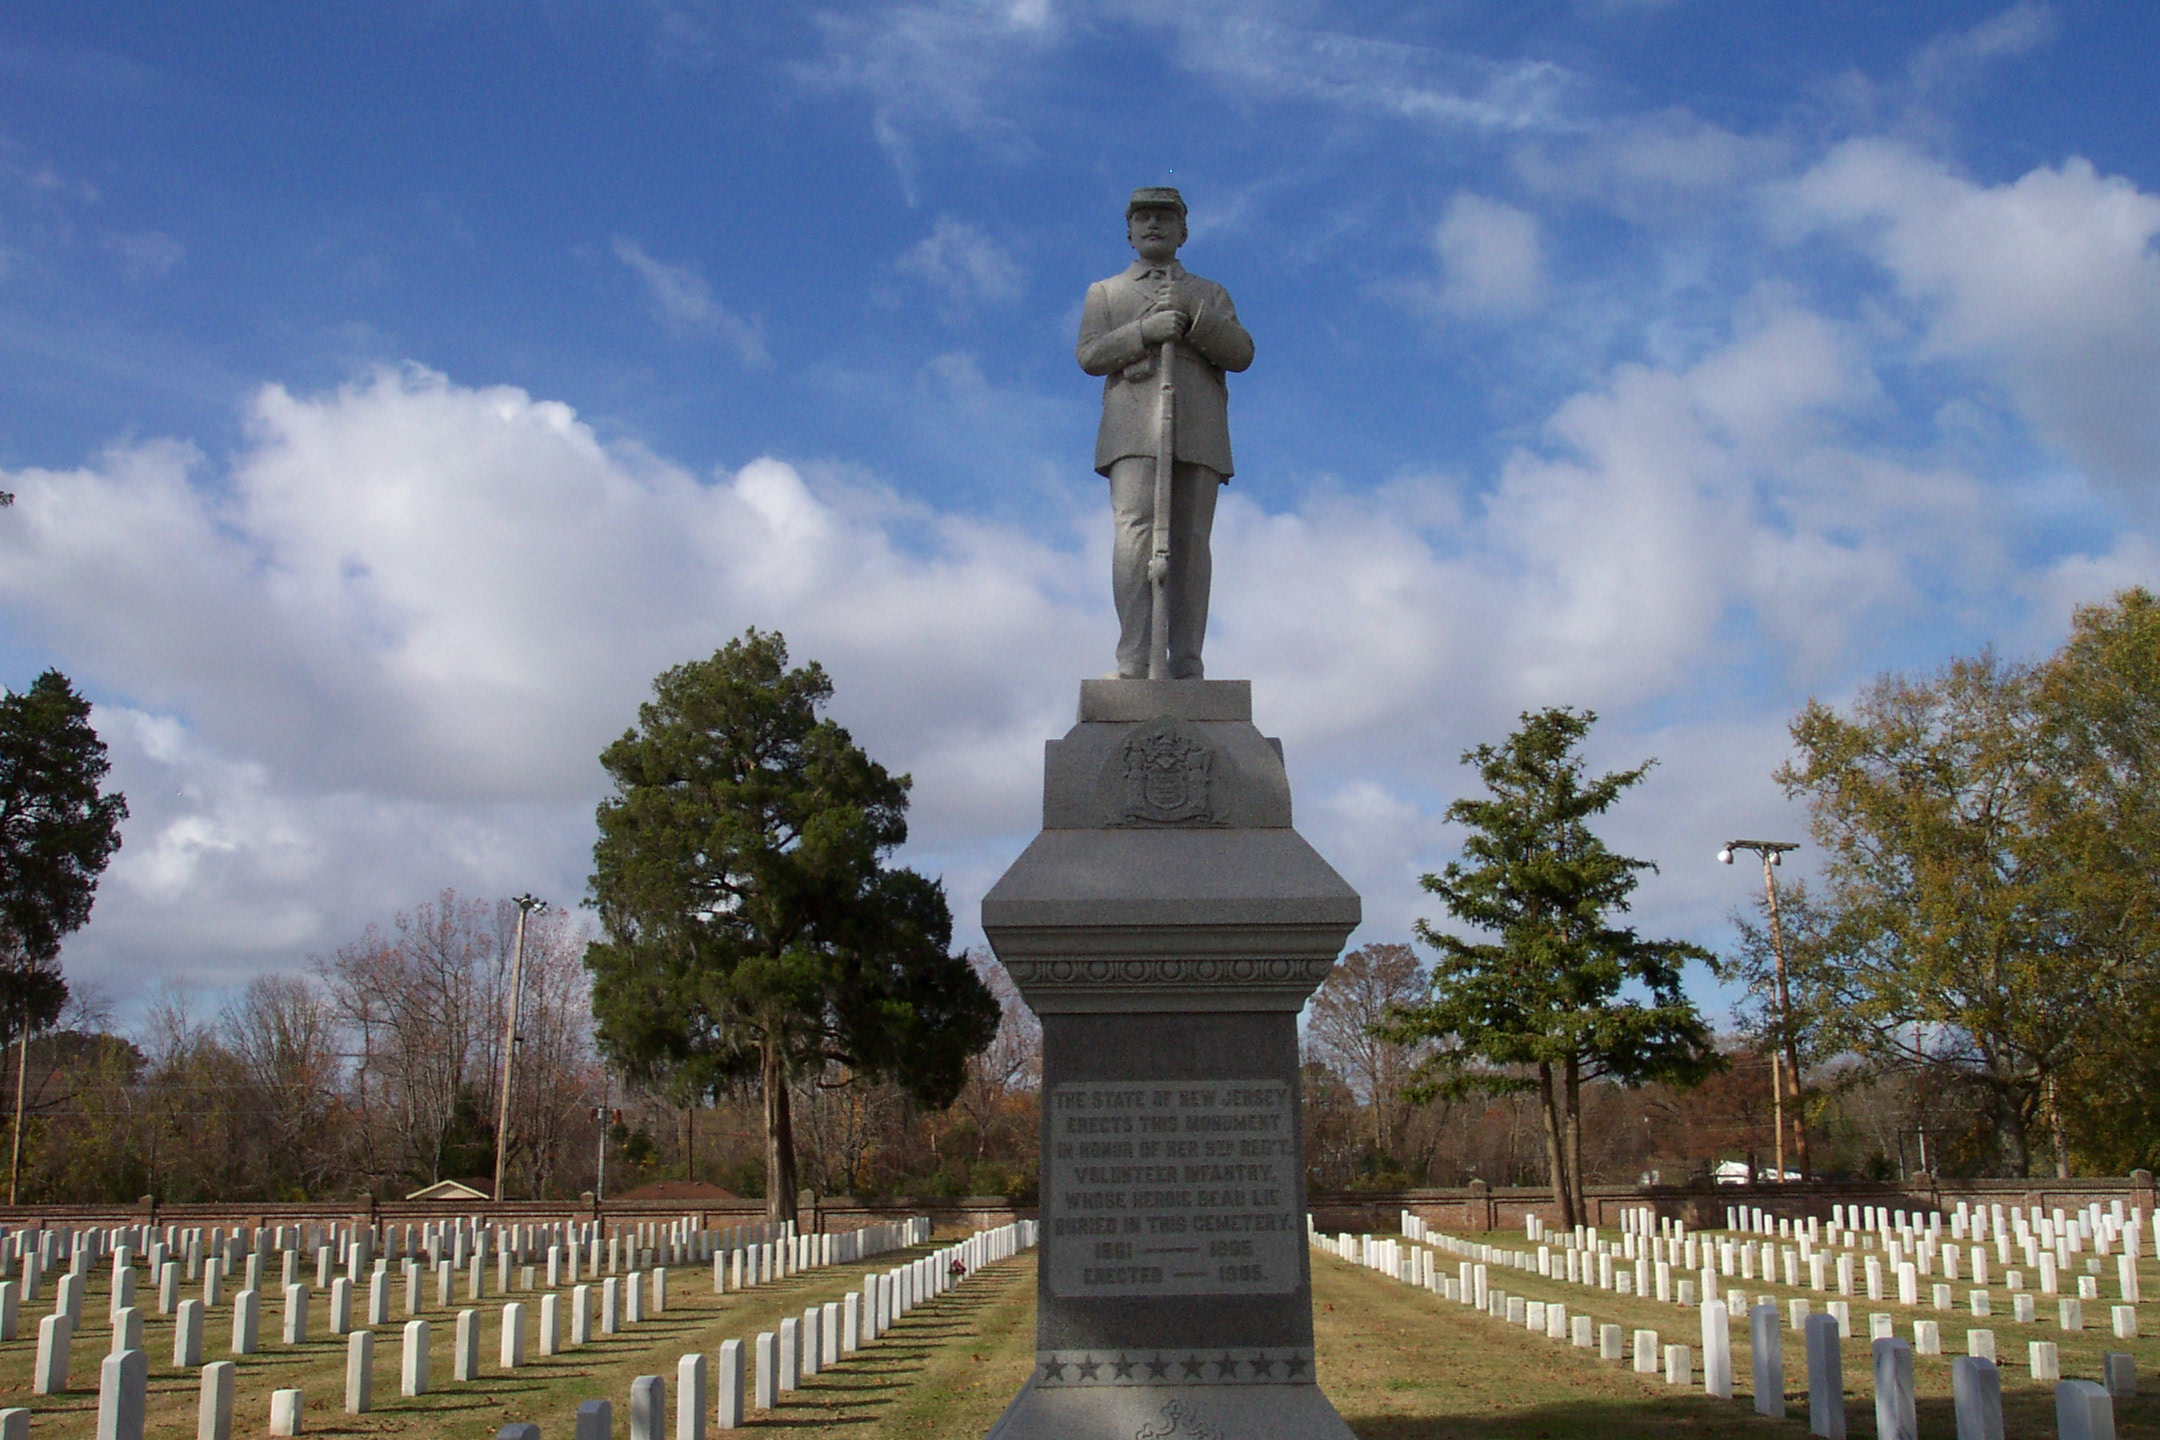 Monument to the New Jersey soldiers buried in New Bern National cemetery